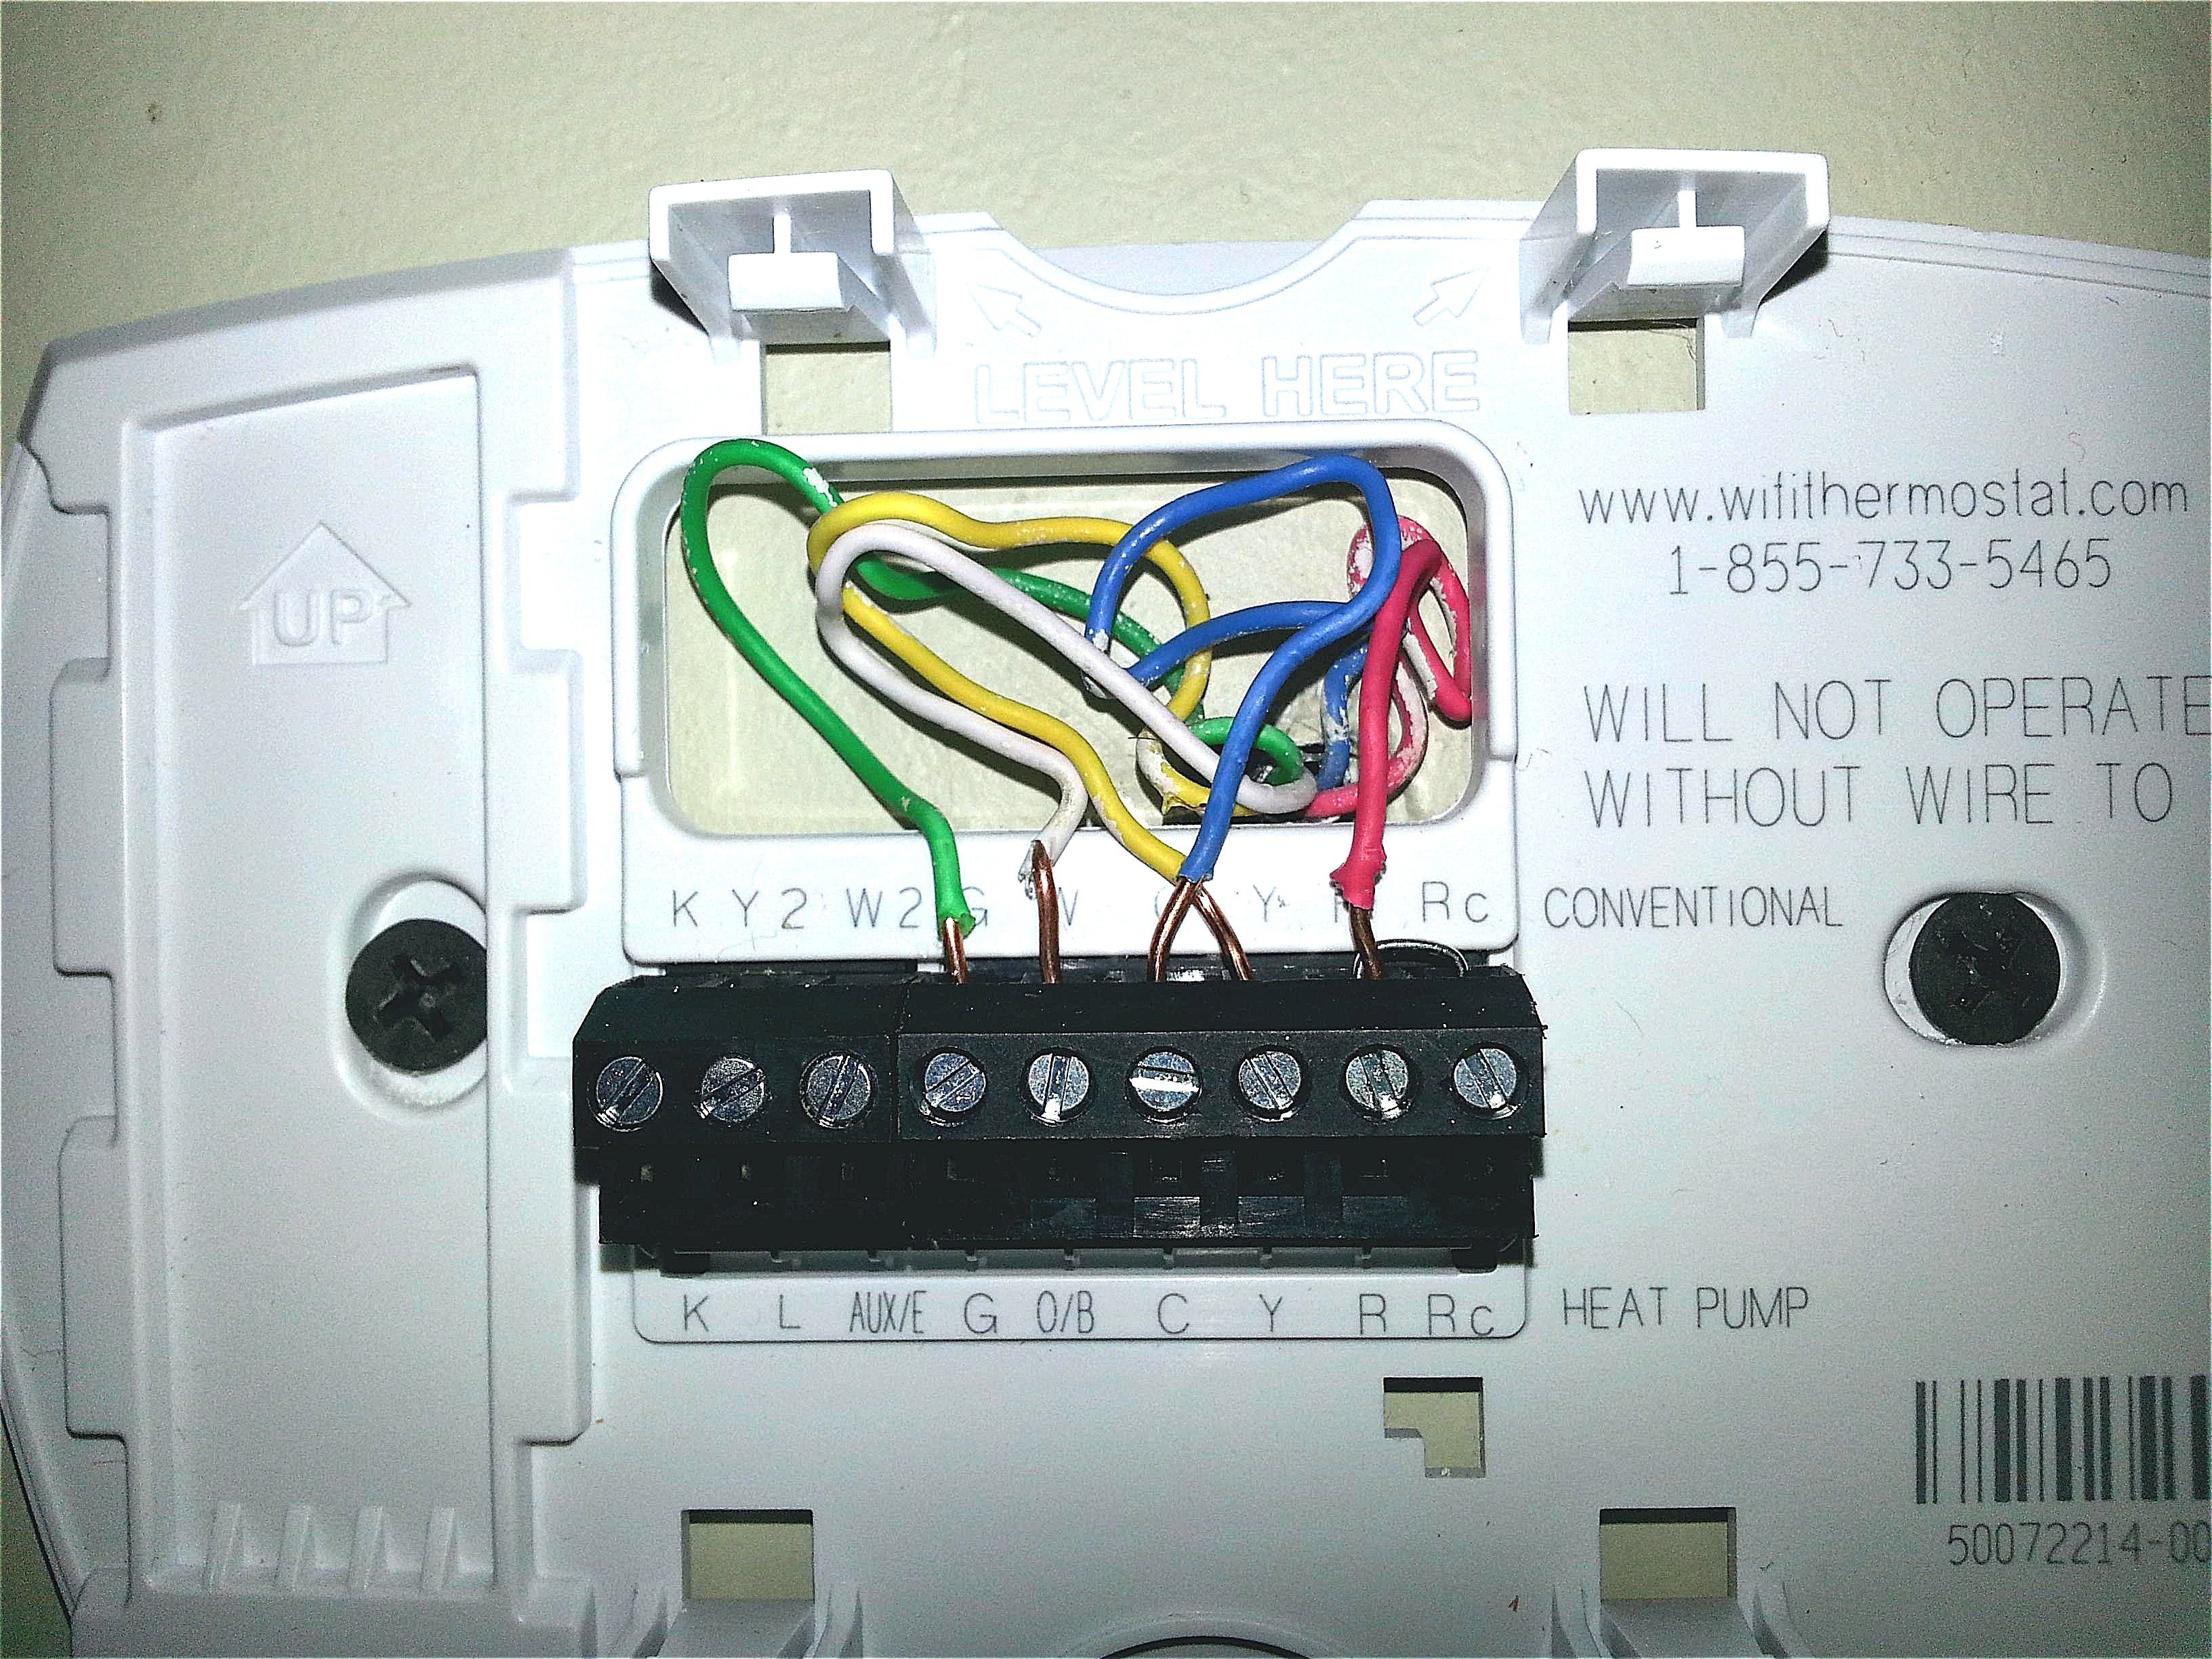 honeywell thermostat wiring diagram new wiring diagram image rh mainetreasurechest com honeywell thermostat wiring diagram 9580 honeywell thermostat wiring diagram heat pump